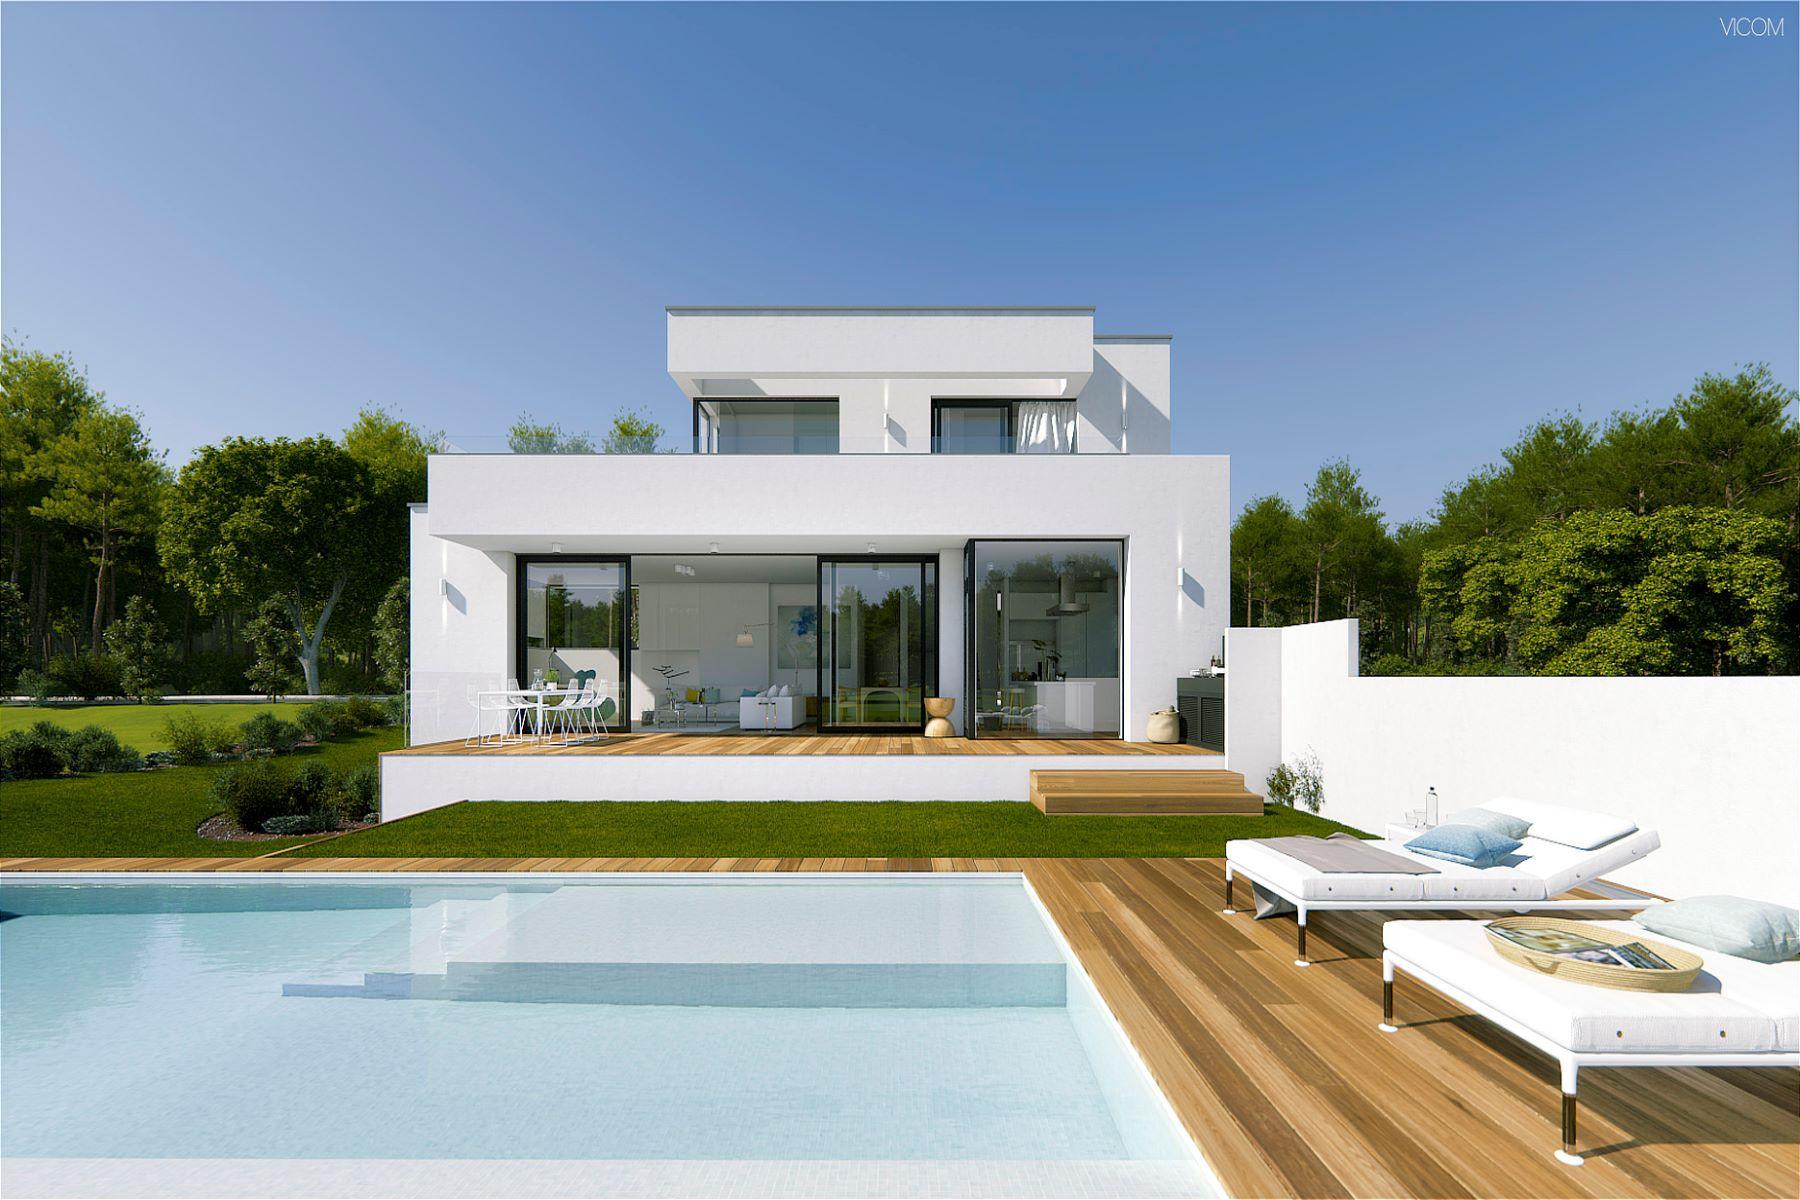 Single Family Home for Sale at Bright designer villa Other Spain, Other Areas In Spain, 17001 Spain